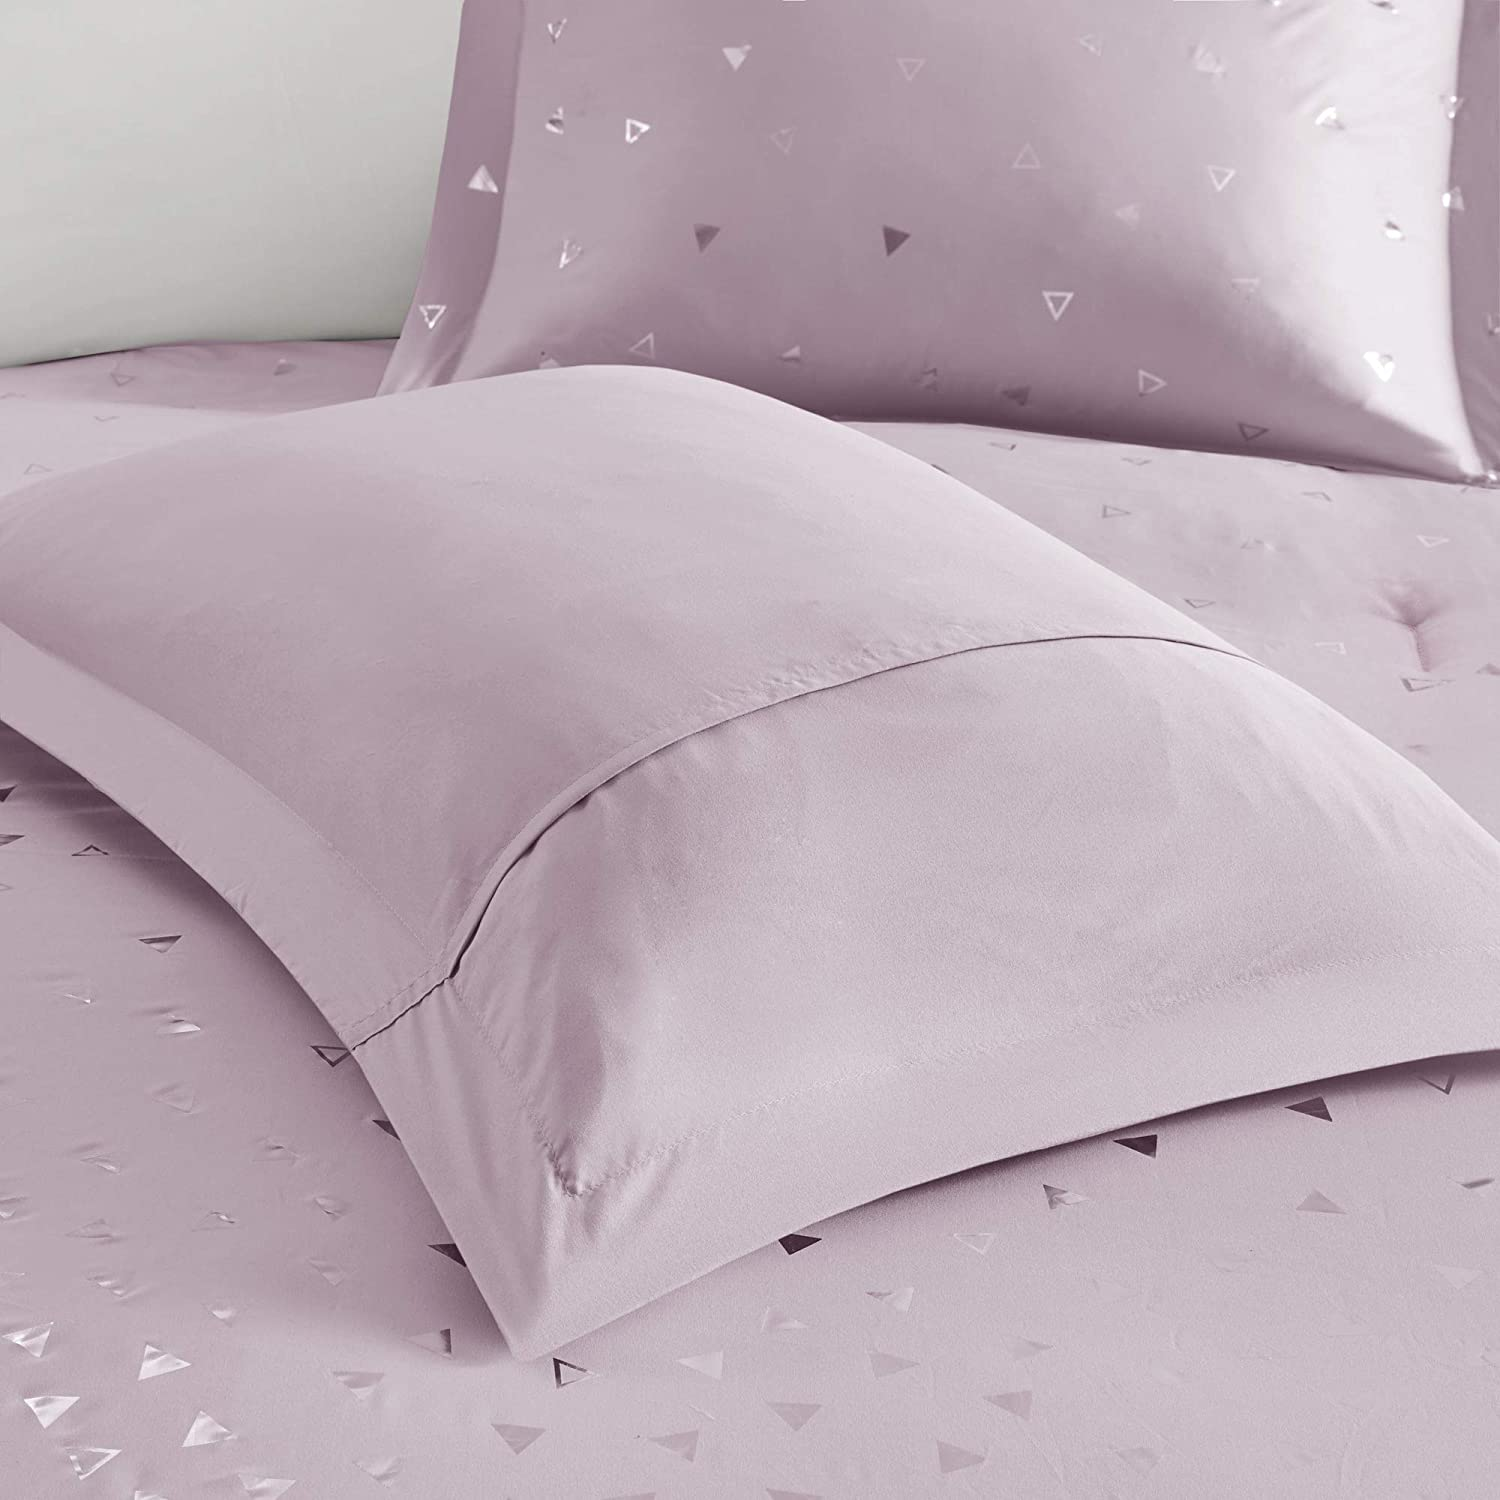 Full//Queen Intelligent Design Zoey Comforter Reversible Triangle Metallic Printed 100/% Brushed Ultra-Soft Overfilled Down Alternative Hypoallergenic All Season Bedding-Set Blush//Rosegold